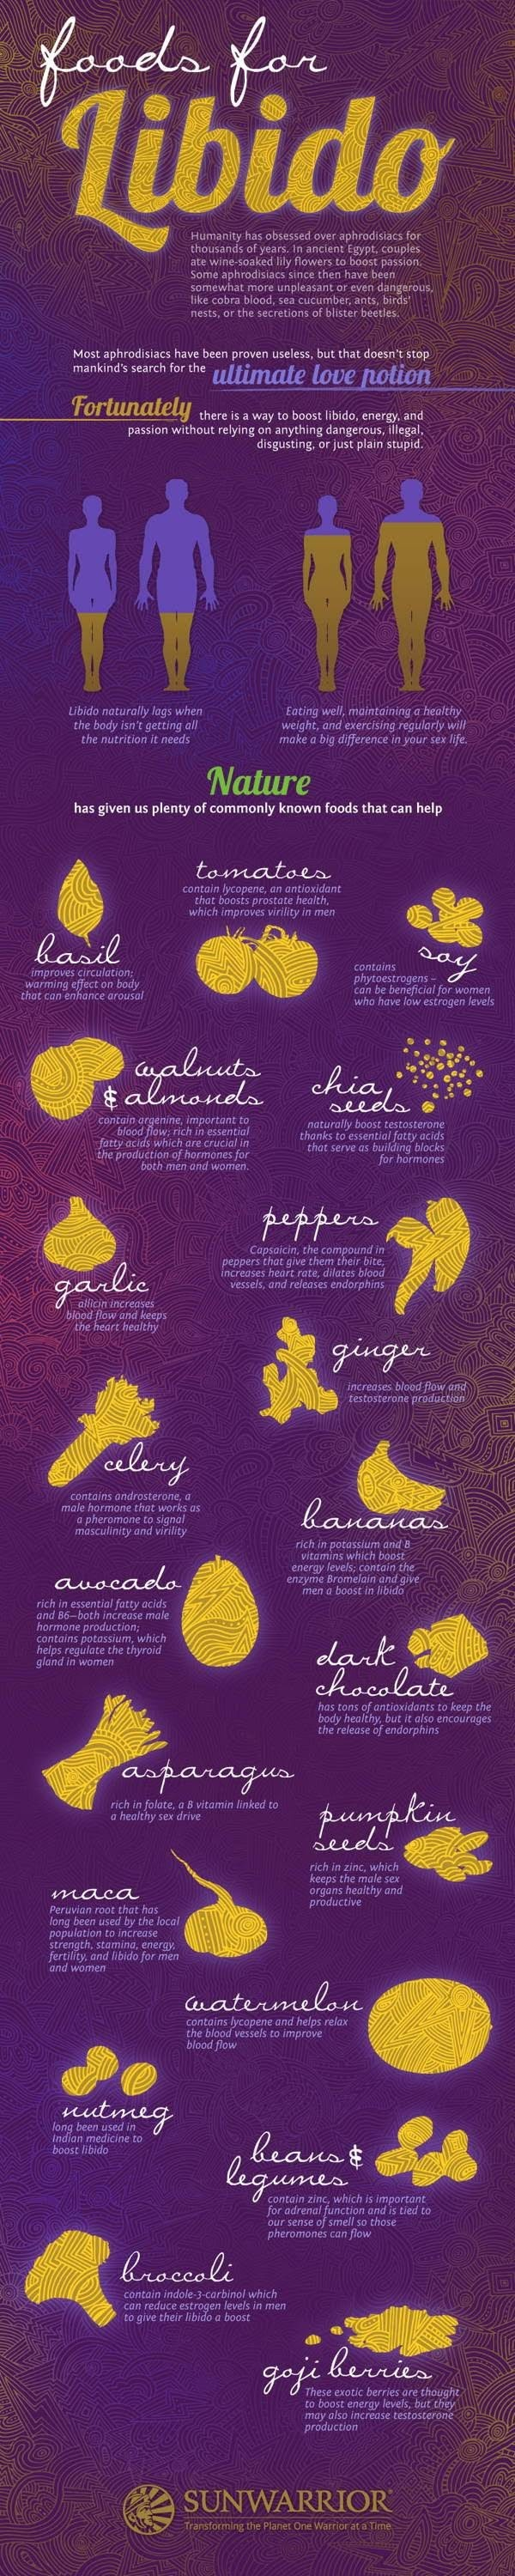 Foods to Boost Your Libido and Stamina #infographic